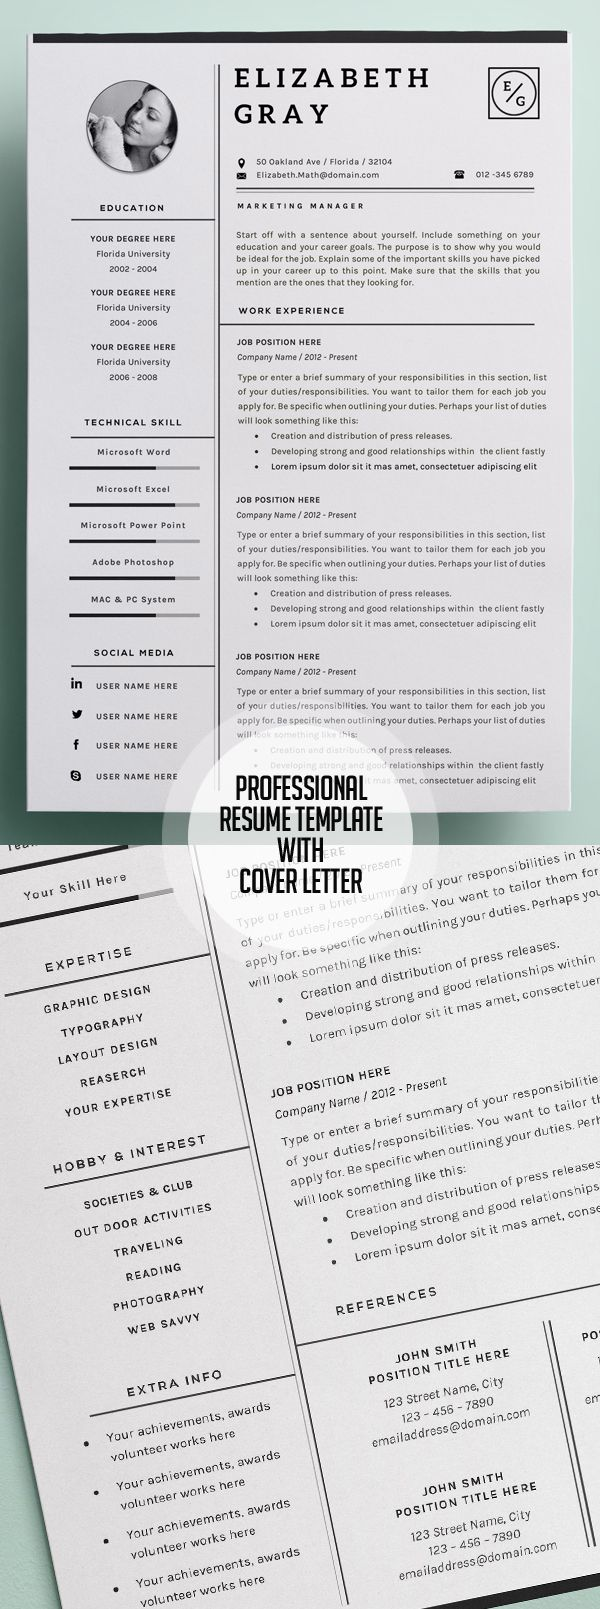 Opposenewapstandardsus  Marvelous  Resume Ideas On Pinterest  Resume Resume Templates And  With Heavenly Professional And Modern Resume Template With Page Cover Cvtemplate With Comely Automotive Technician Resume Also Magna Cum Laude Resume In Addition Acting Resumes And Resumes Definition As Well As Awesome Resumes Additionally How To Make A College Resume From Pinterestcom With Opposenewapstandardsus  Heavenly  Resume Ideas On Pinterest  Resume Resume Templates And  With Comely Professional And Modern Resume Template With Page Cover Cvtemplate And Marvelous Automotive Technician Resume Also Magna Cum Laude Resume In Addition Acting Resumes From Pinterestcom